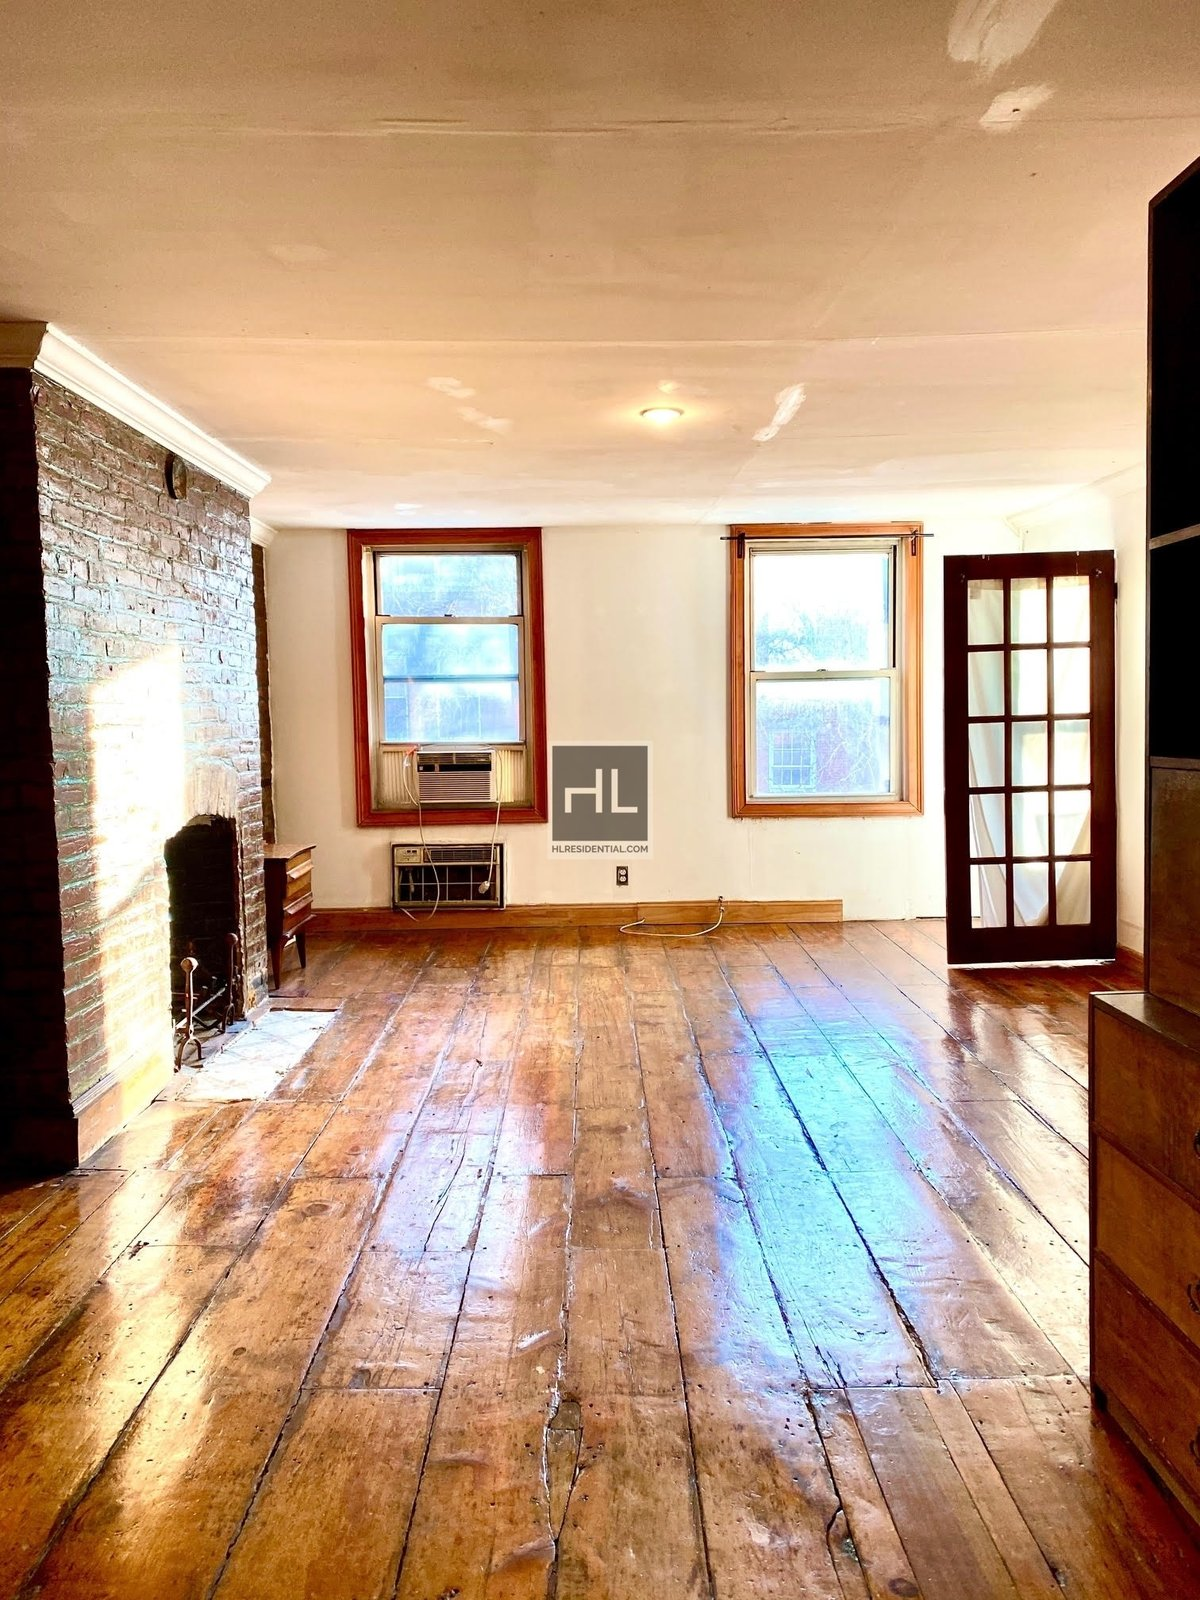 Image for 271 EAST 7 STREET